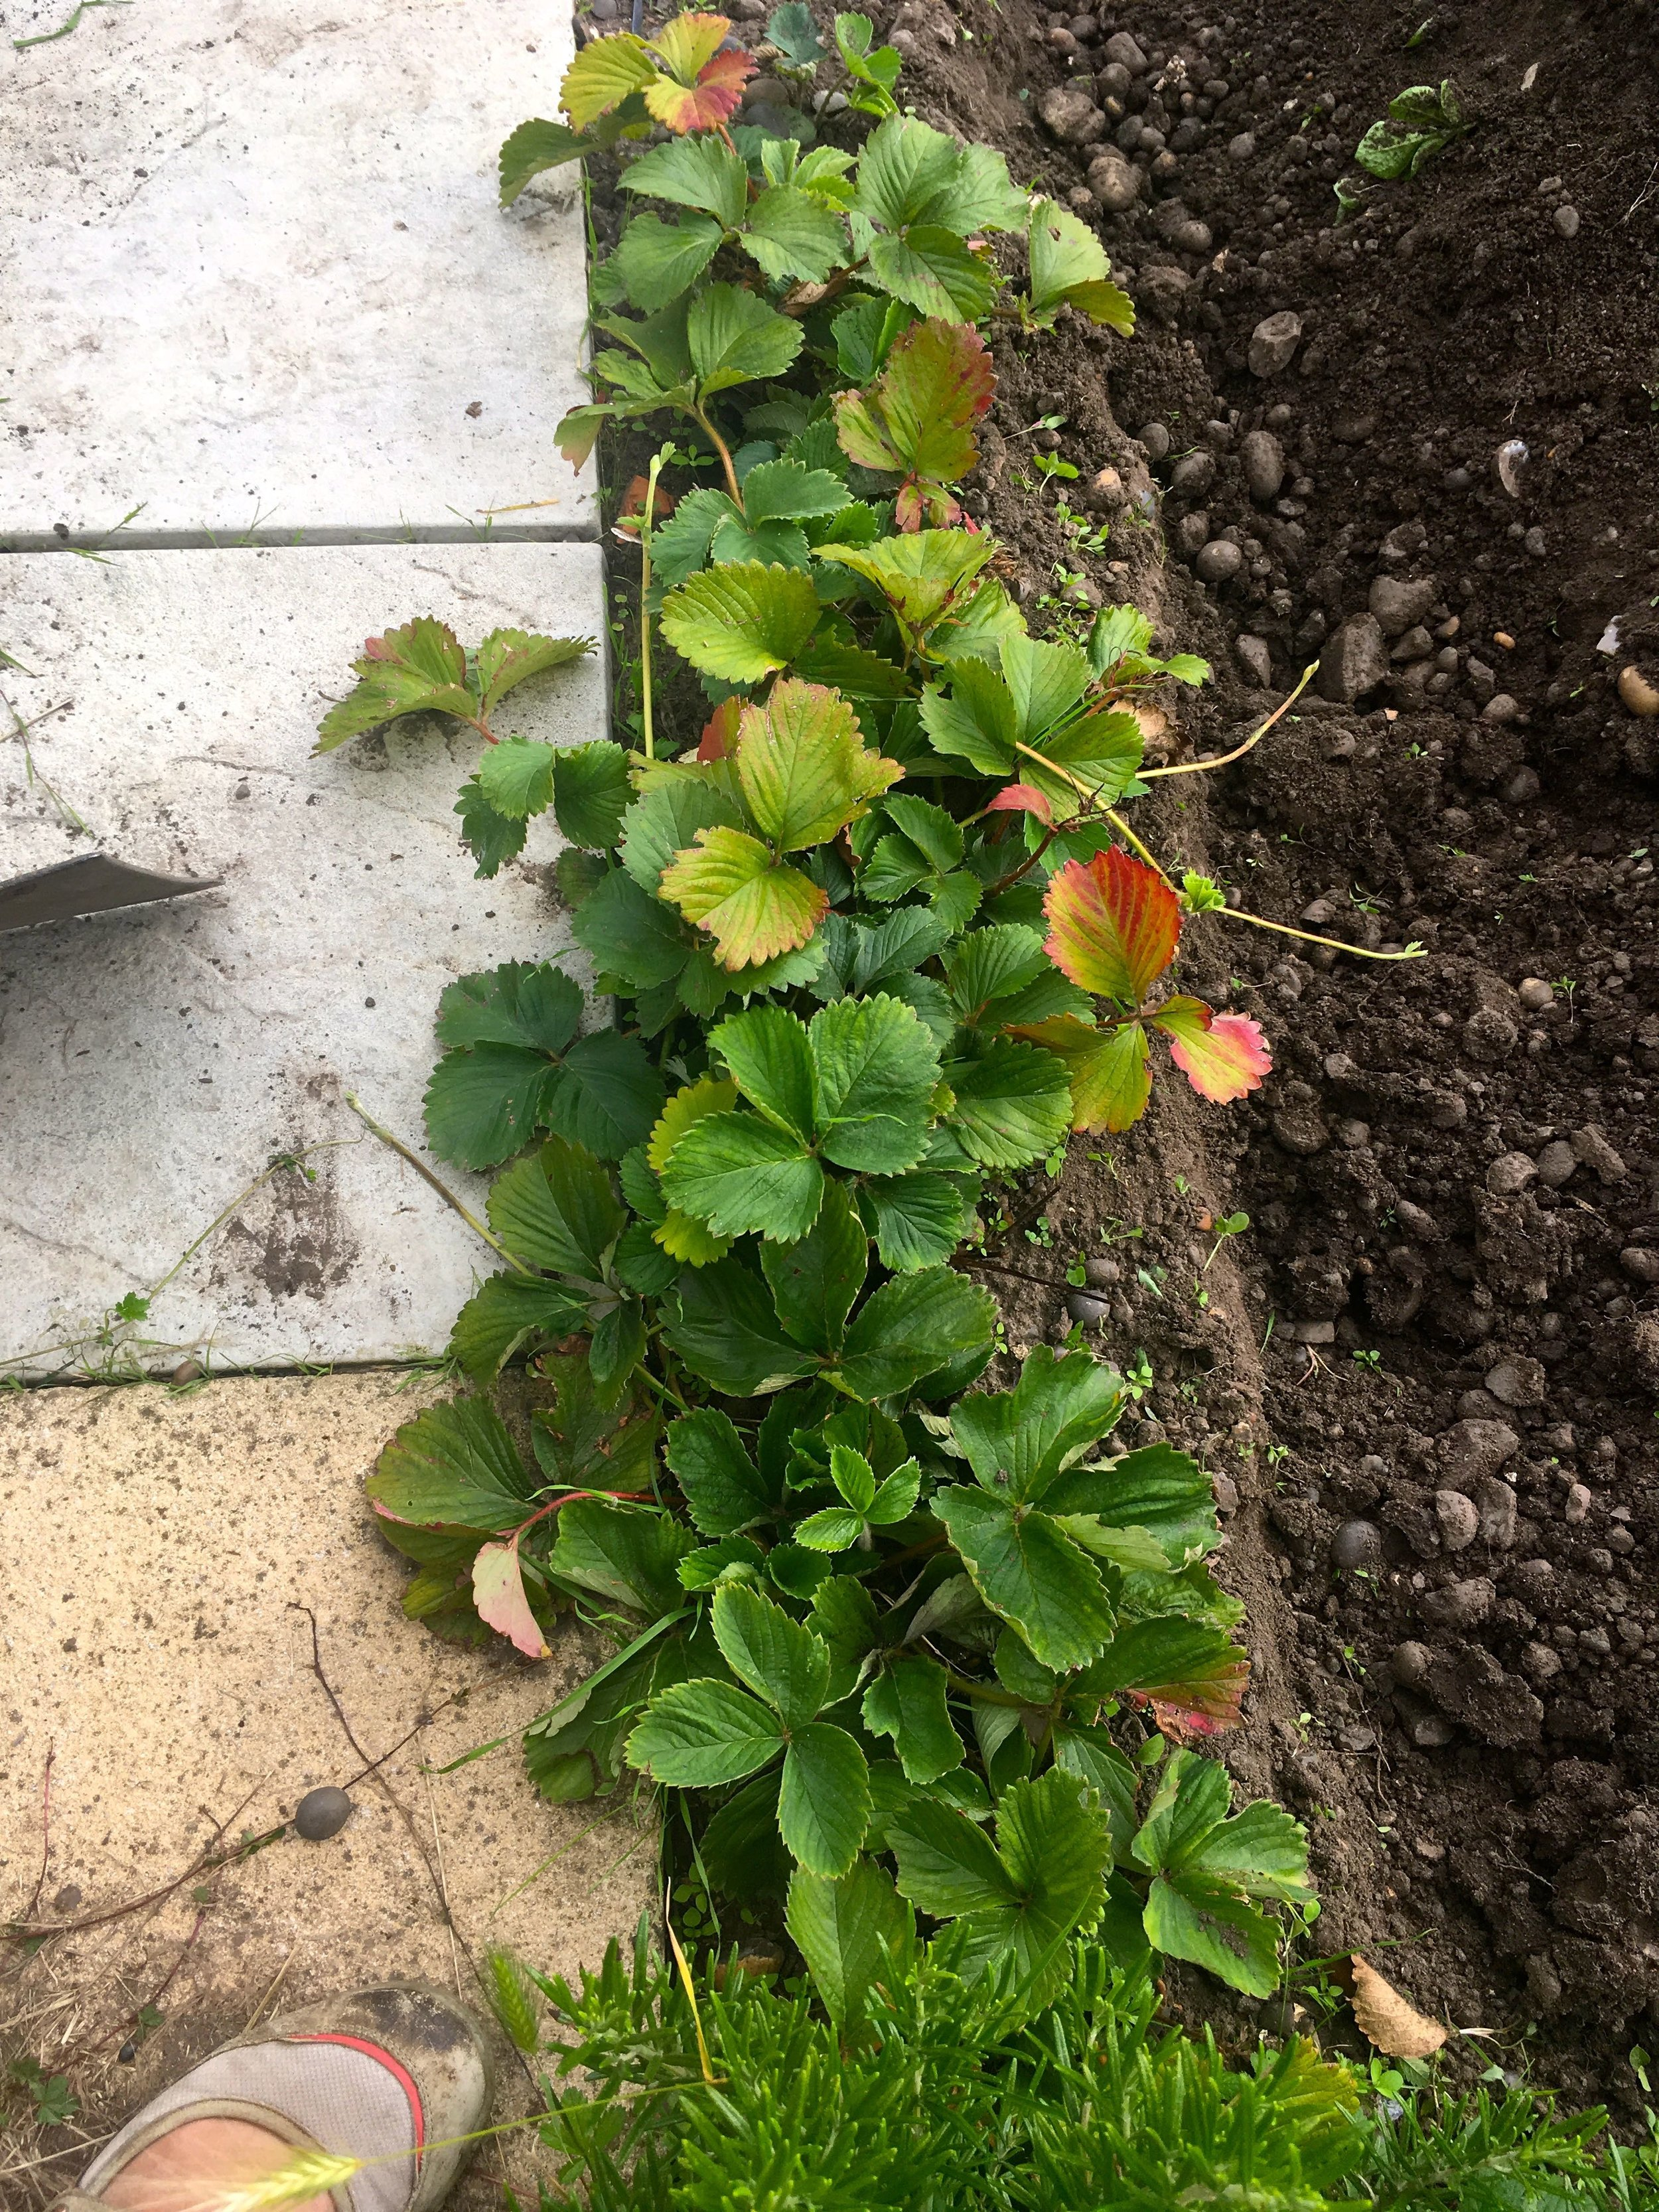 the strawberries I moved are doing well